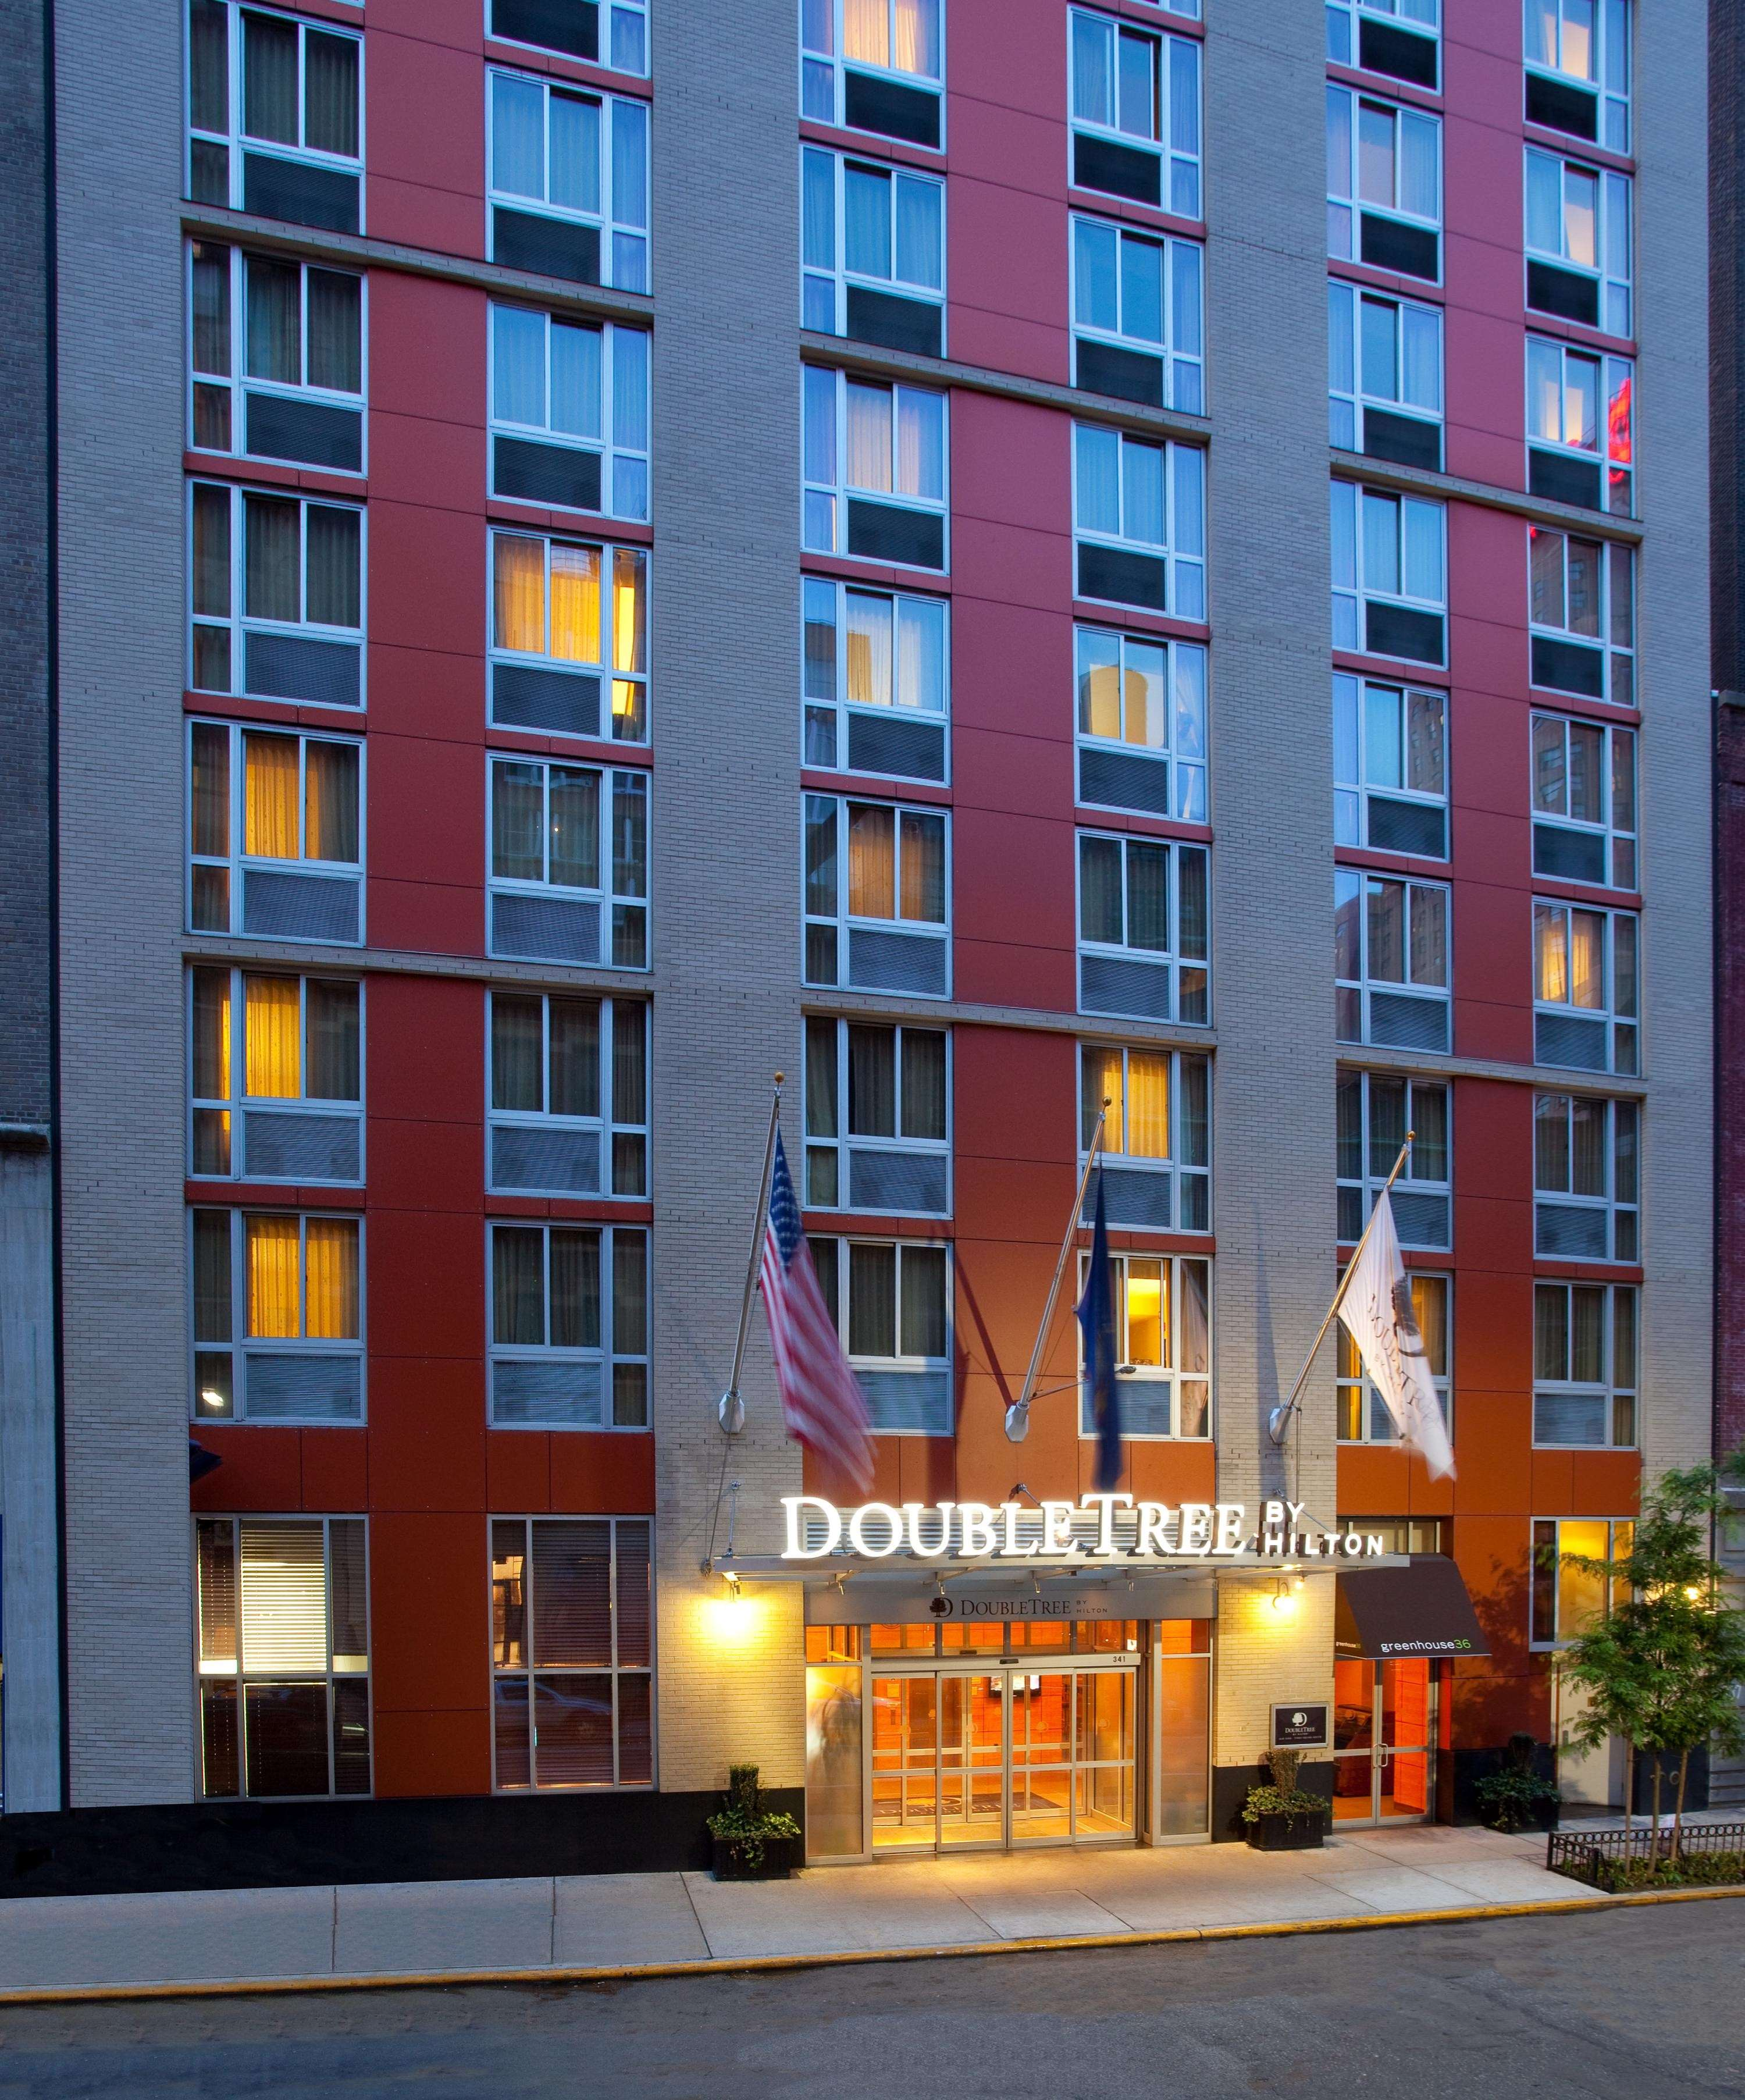 A Doubletree By Hilton Hotel In